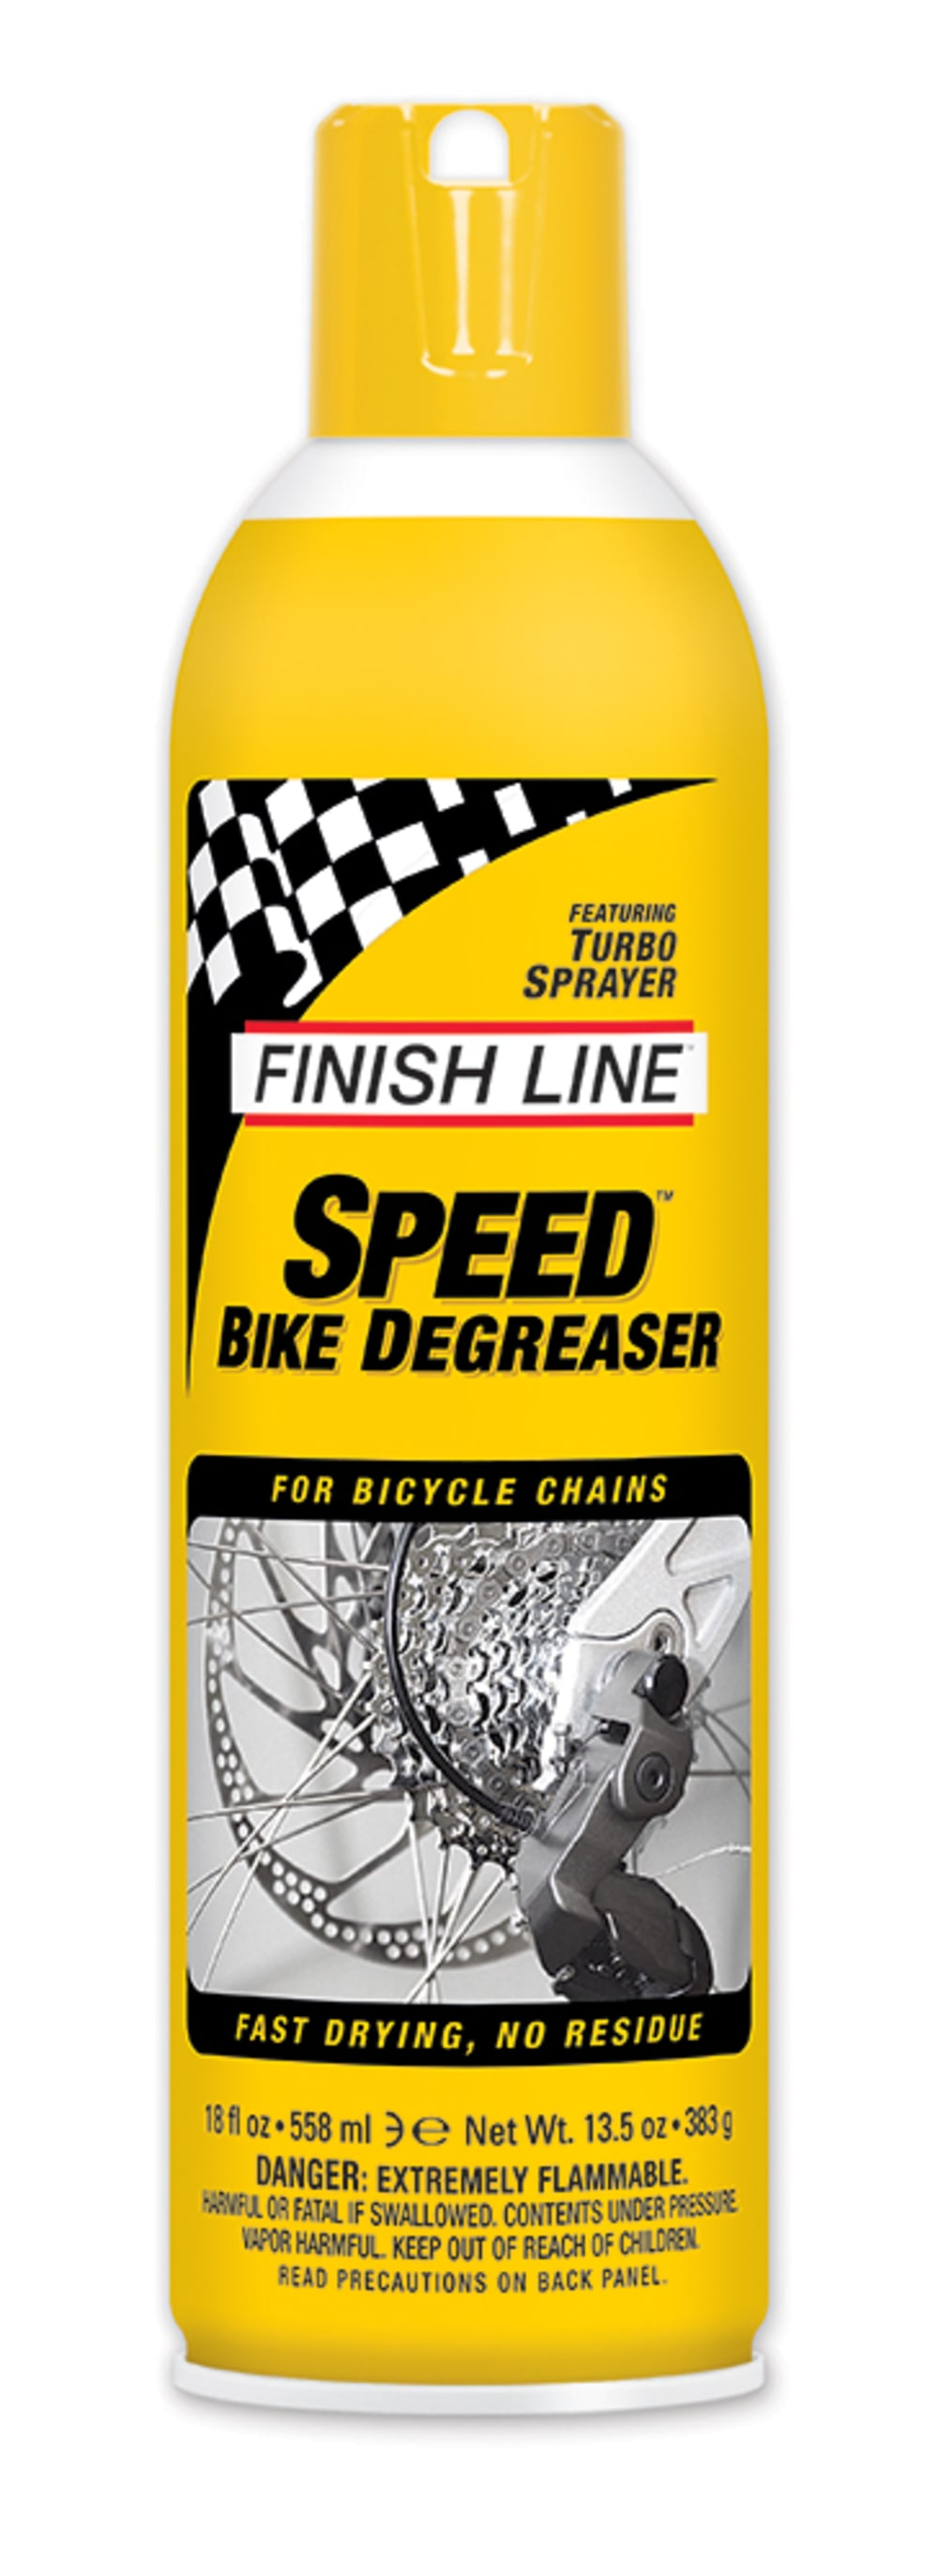 FINISH LINE Speed Bike Degreaser - NONE